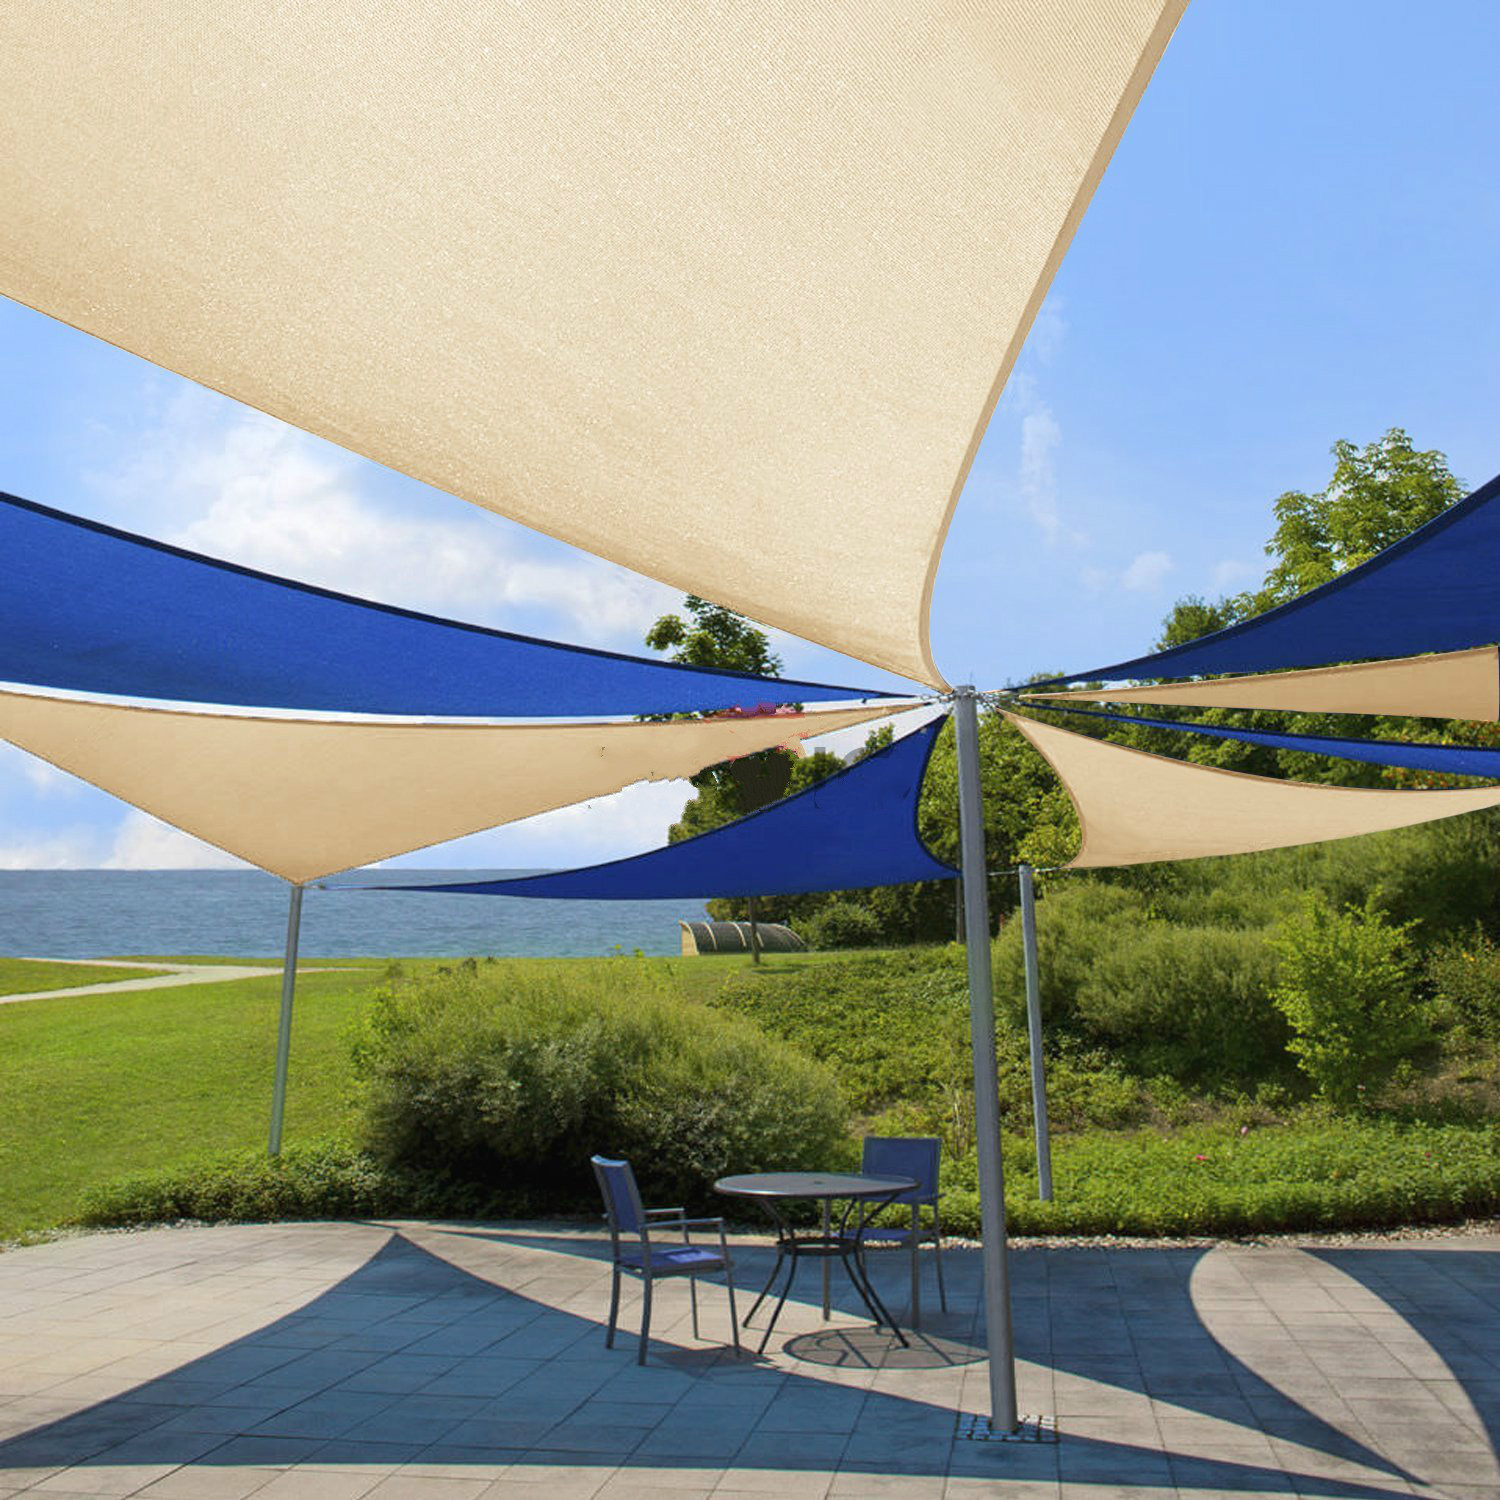 Jinguan Net 10 x10 x10  Beige Sun Shade Sail Canopy   Permeable UV Block  Fabric Durable Patio Outdoor   Customized AvailableSun Shade Outdoor Fabric Promotion Shop for Promotional Sun Shade  . Outdoor Fabric Sun Shades. Home Design Ideas